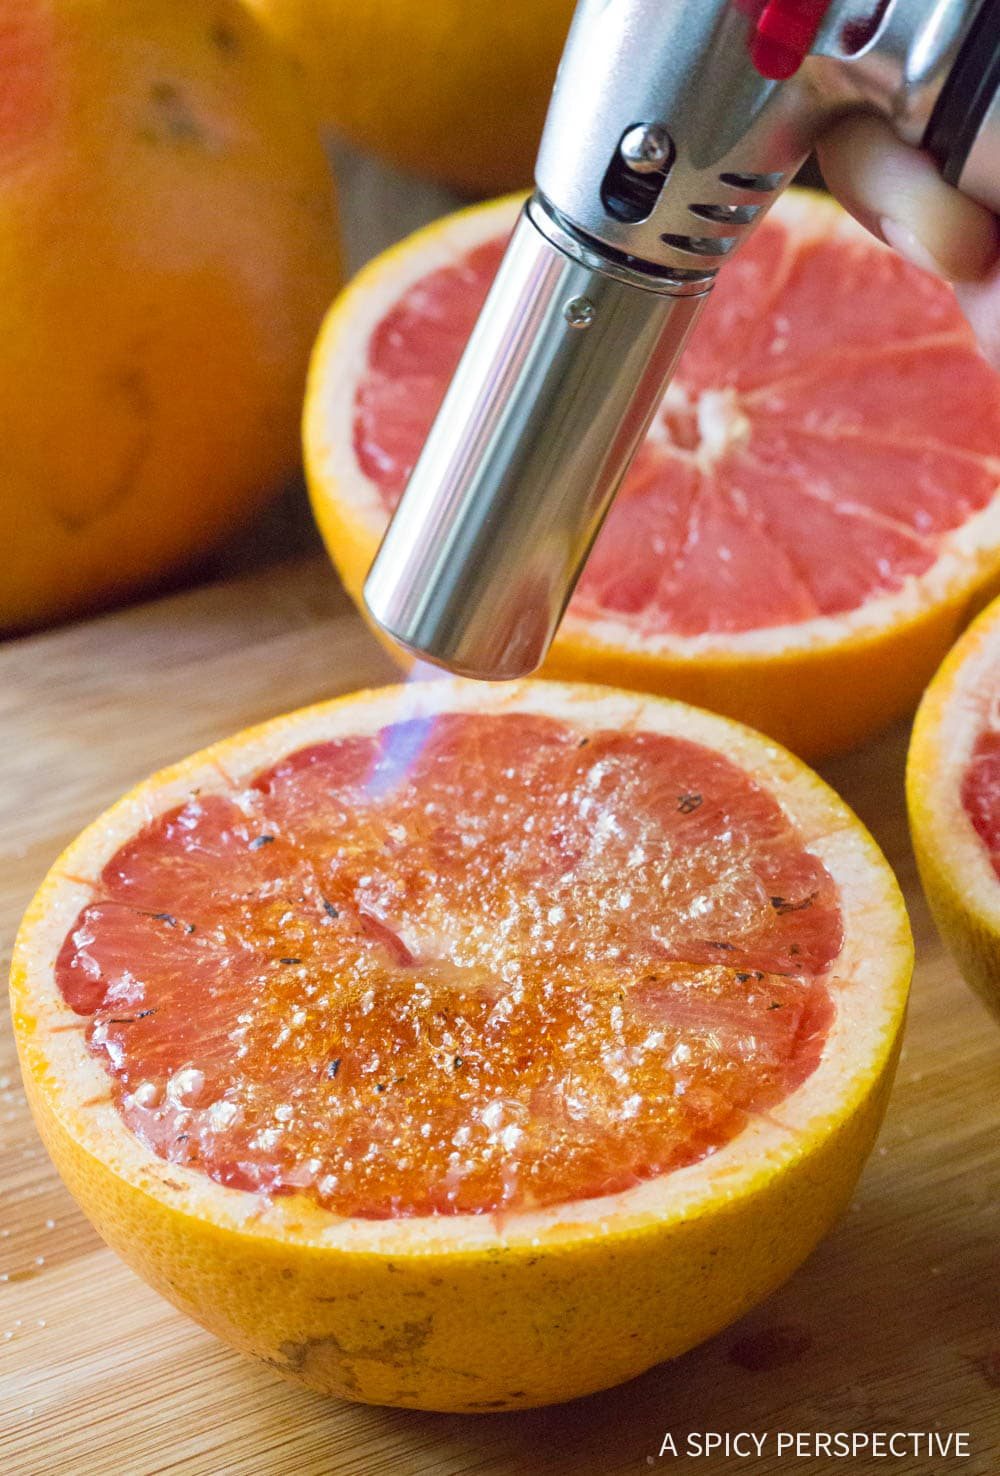 Torch: Bruleed Grapefruit (Pamplemousse Brûlé) Recipe #ASpicyPerspective #vegan #vegetarian #healthy